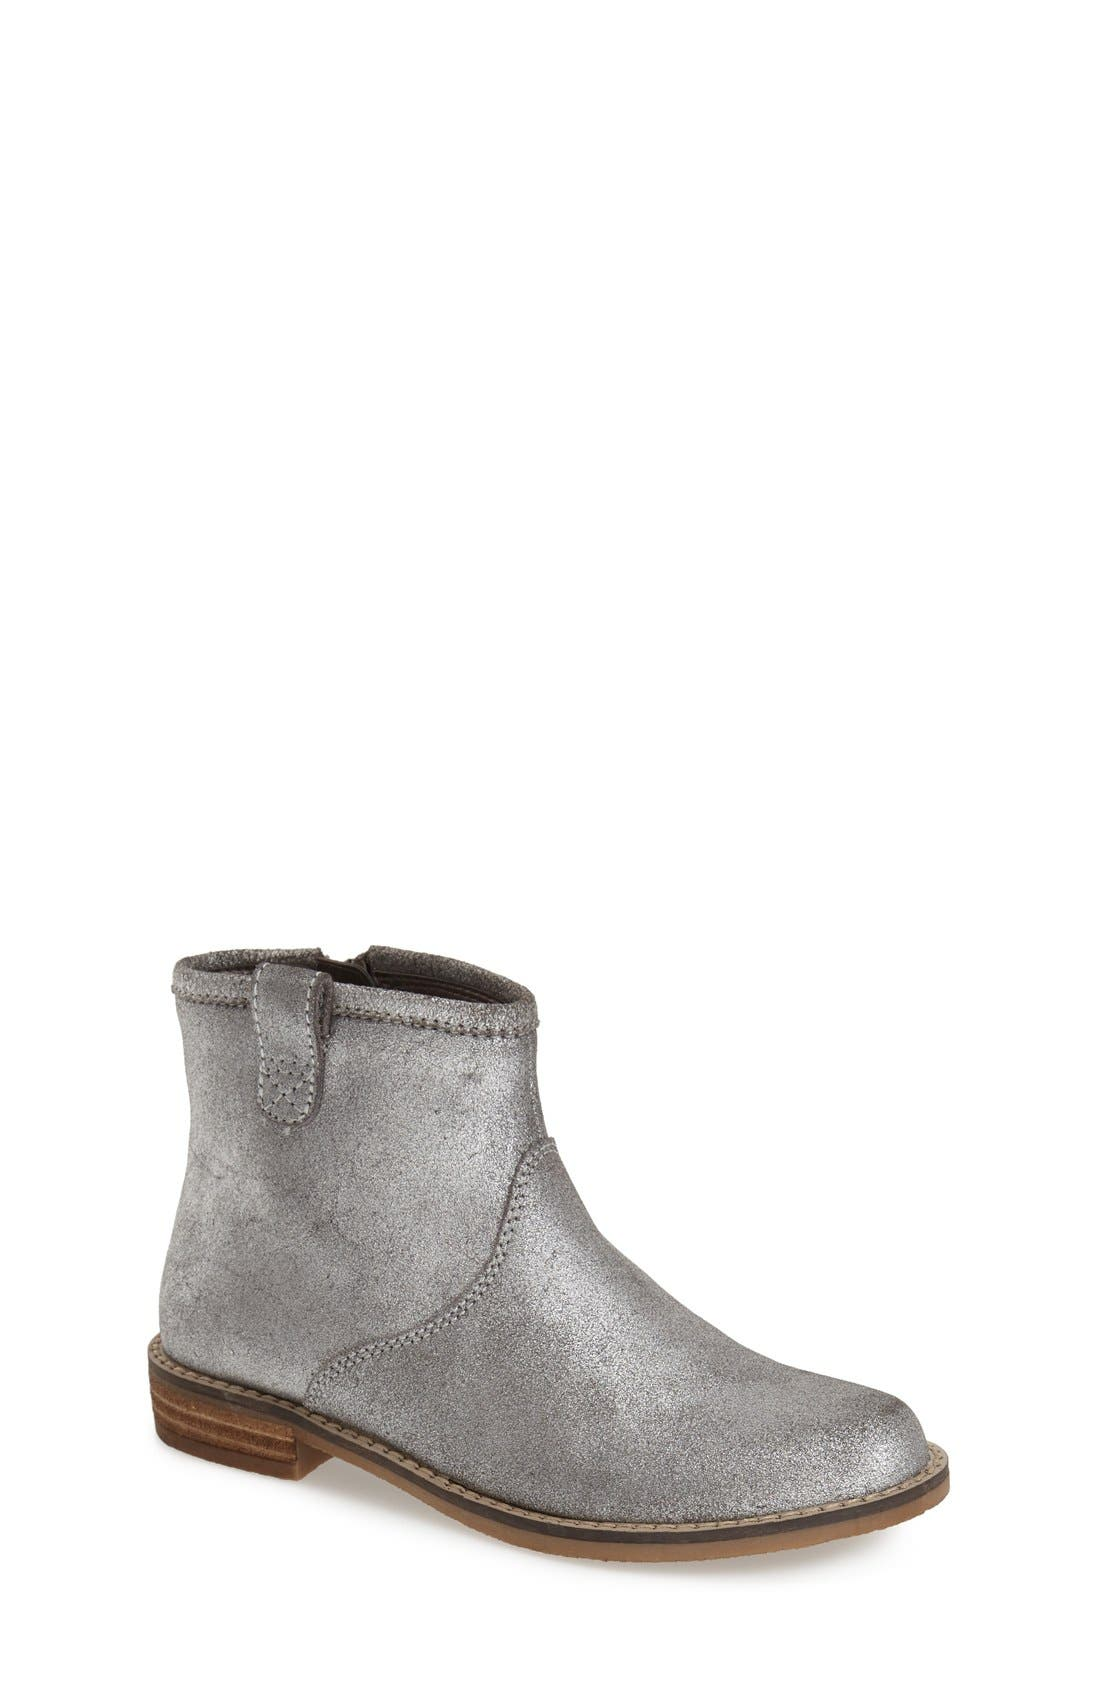 Peek 'Birch' Leather Ankle Boot,                             Main thumbnail 1, color,                             040